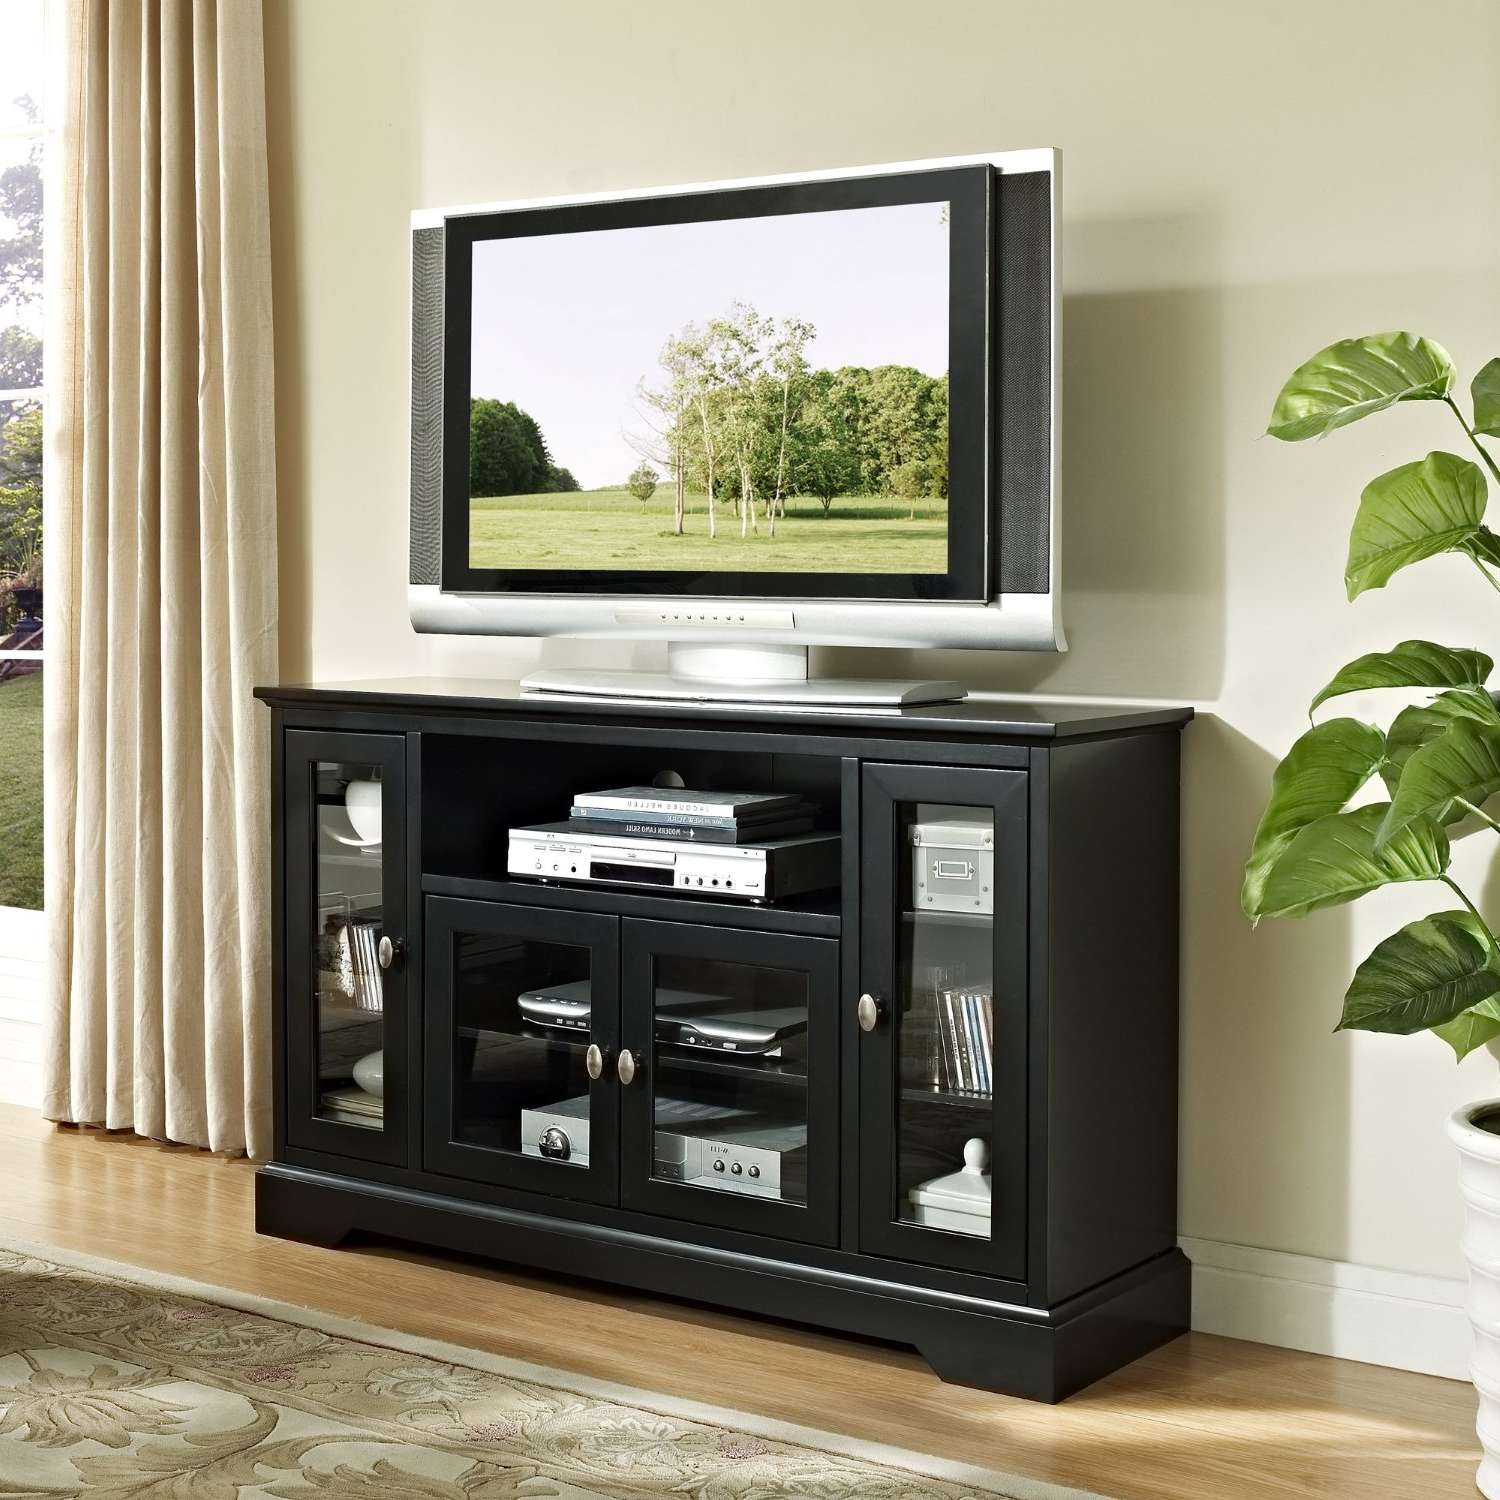 Modern Black Painted Mahogany Wood Media Stand With Glass Doors Of Regarding Wooden Tv Stands For Flat Screens (View 5 of 15)